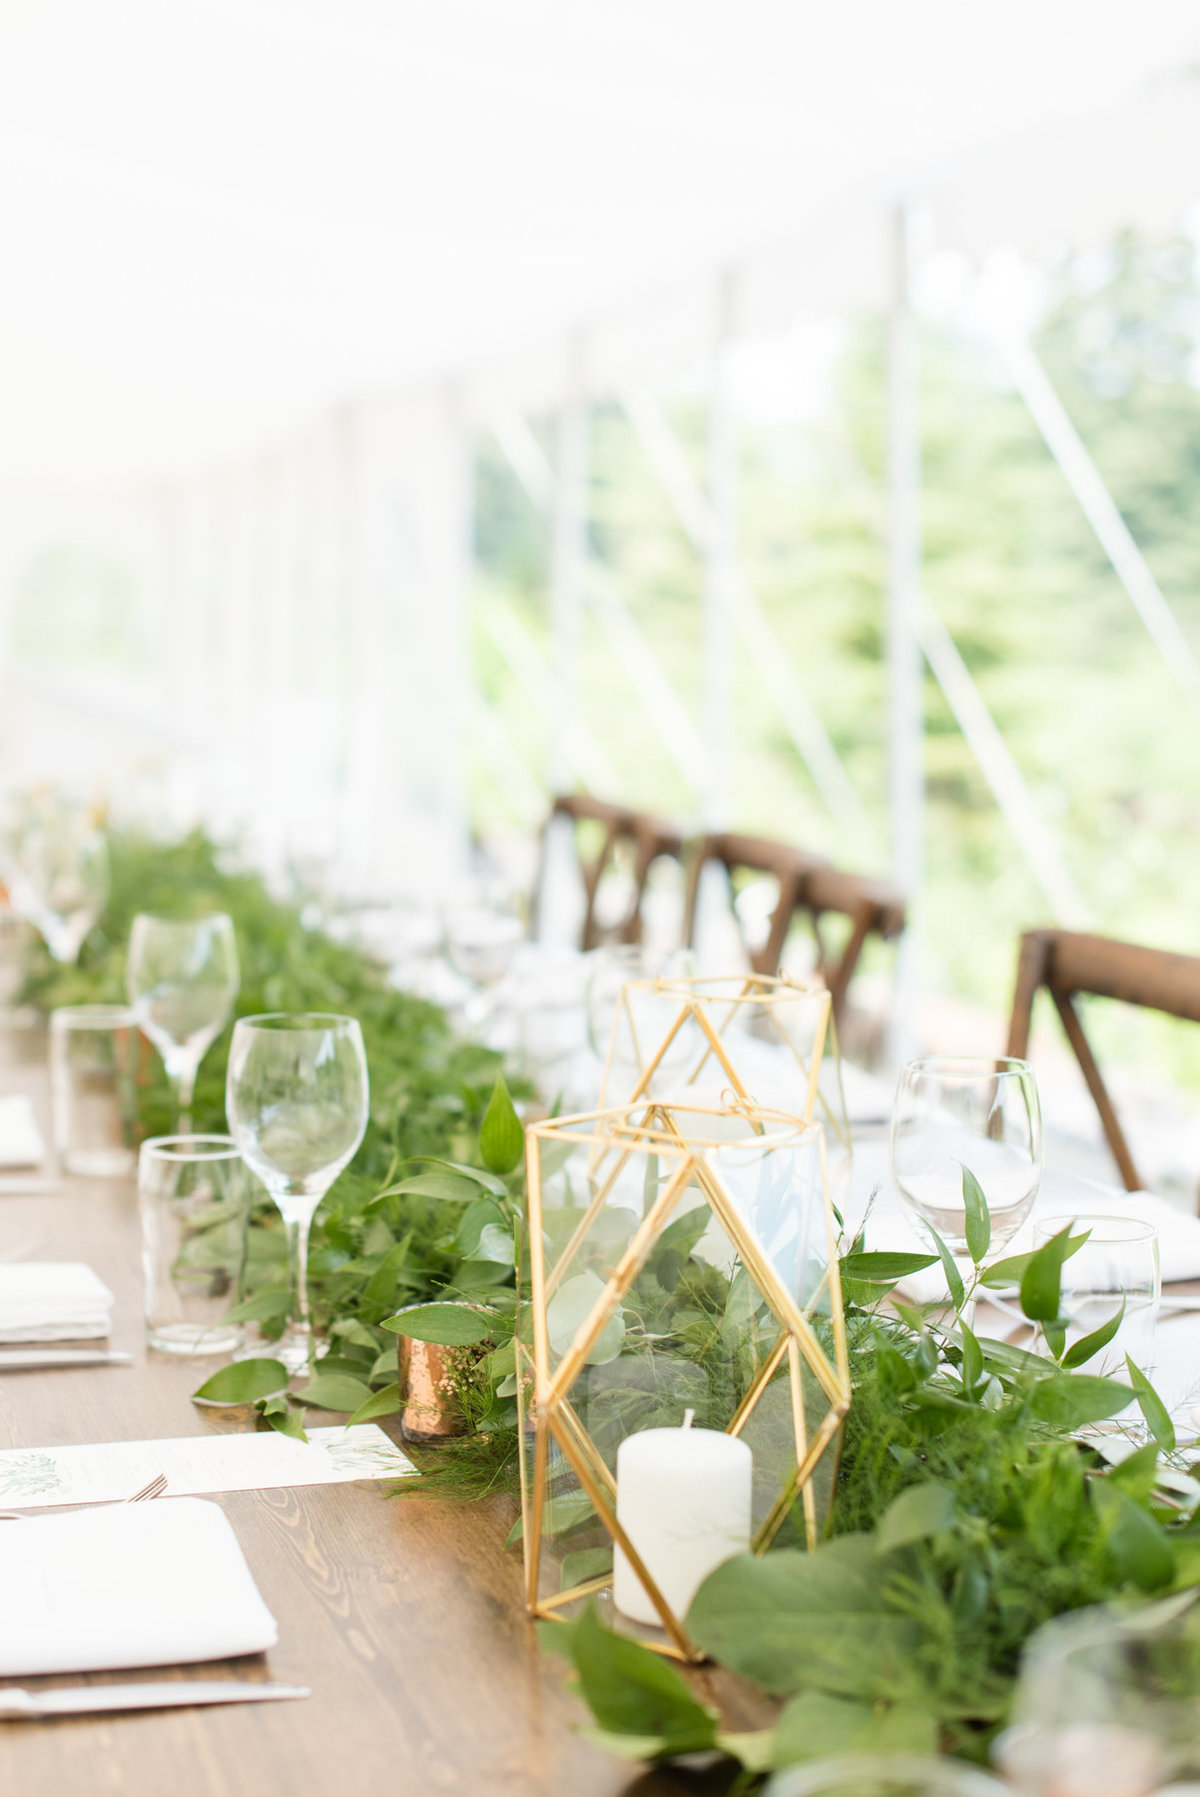 Geometric glass and gold candle holders and greenery table runner decorate Harvest Table from Tents & Events at Stepstone Centre wedding in Thunder Bay